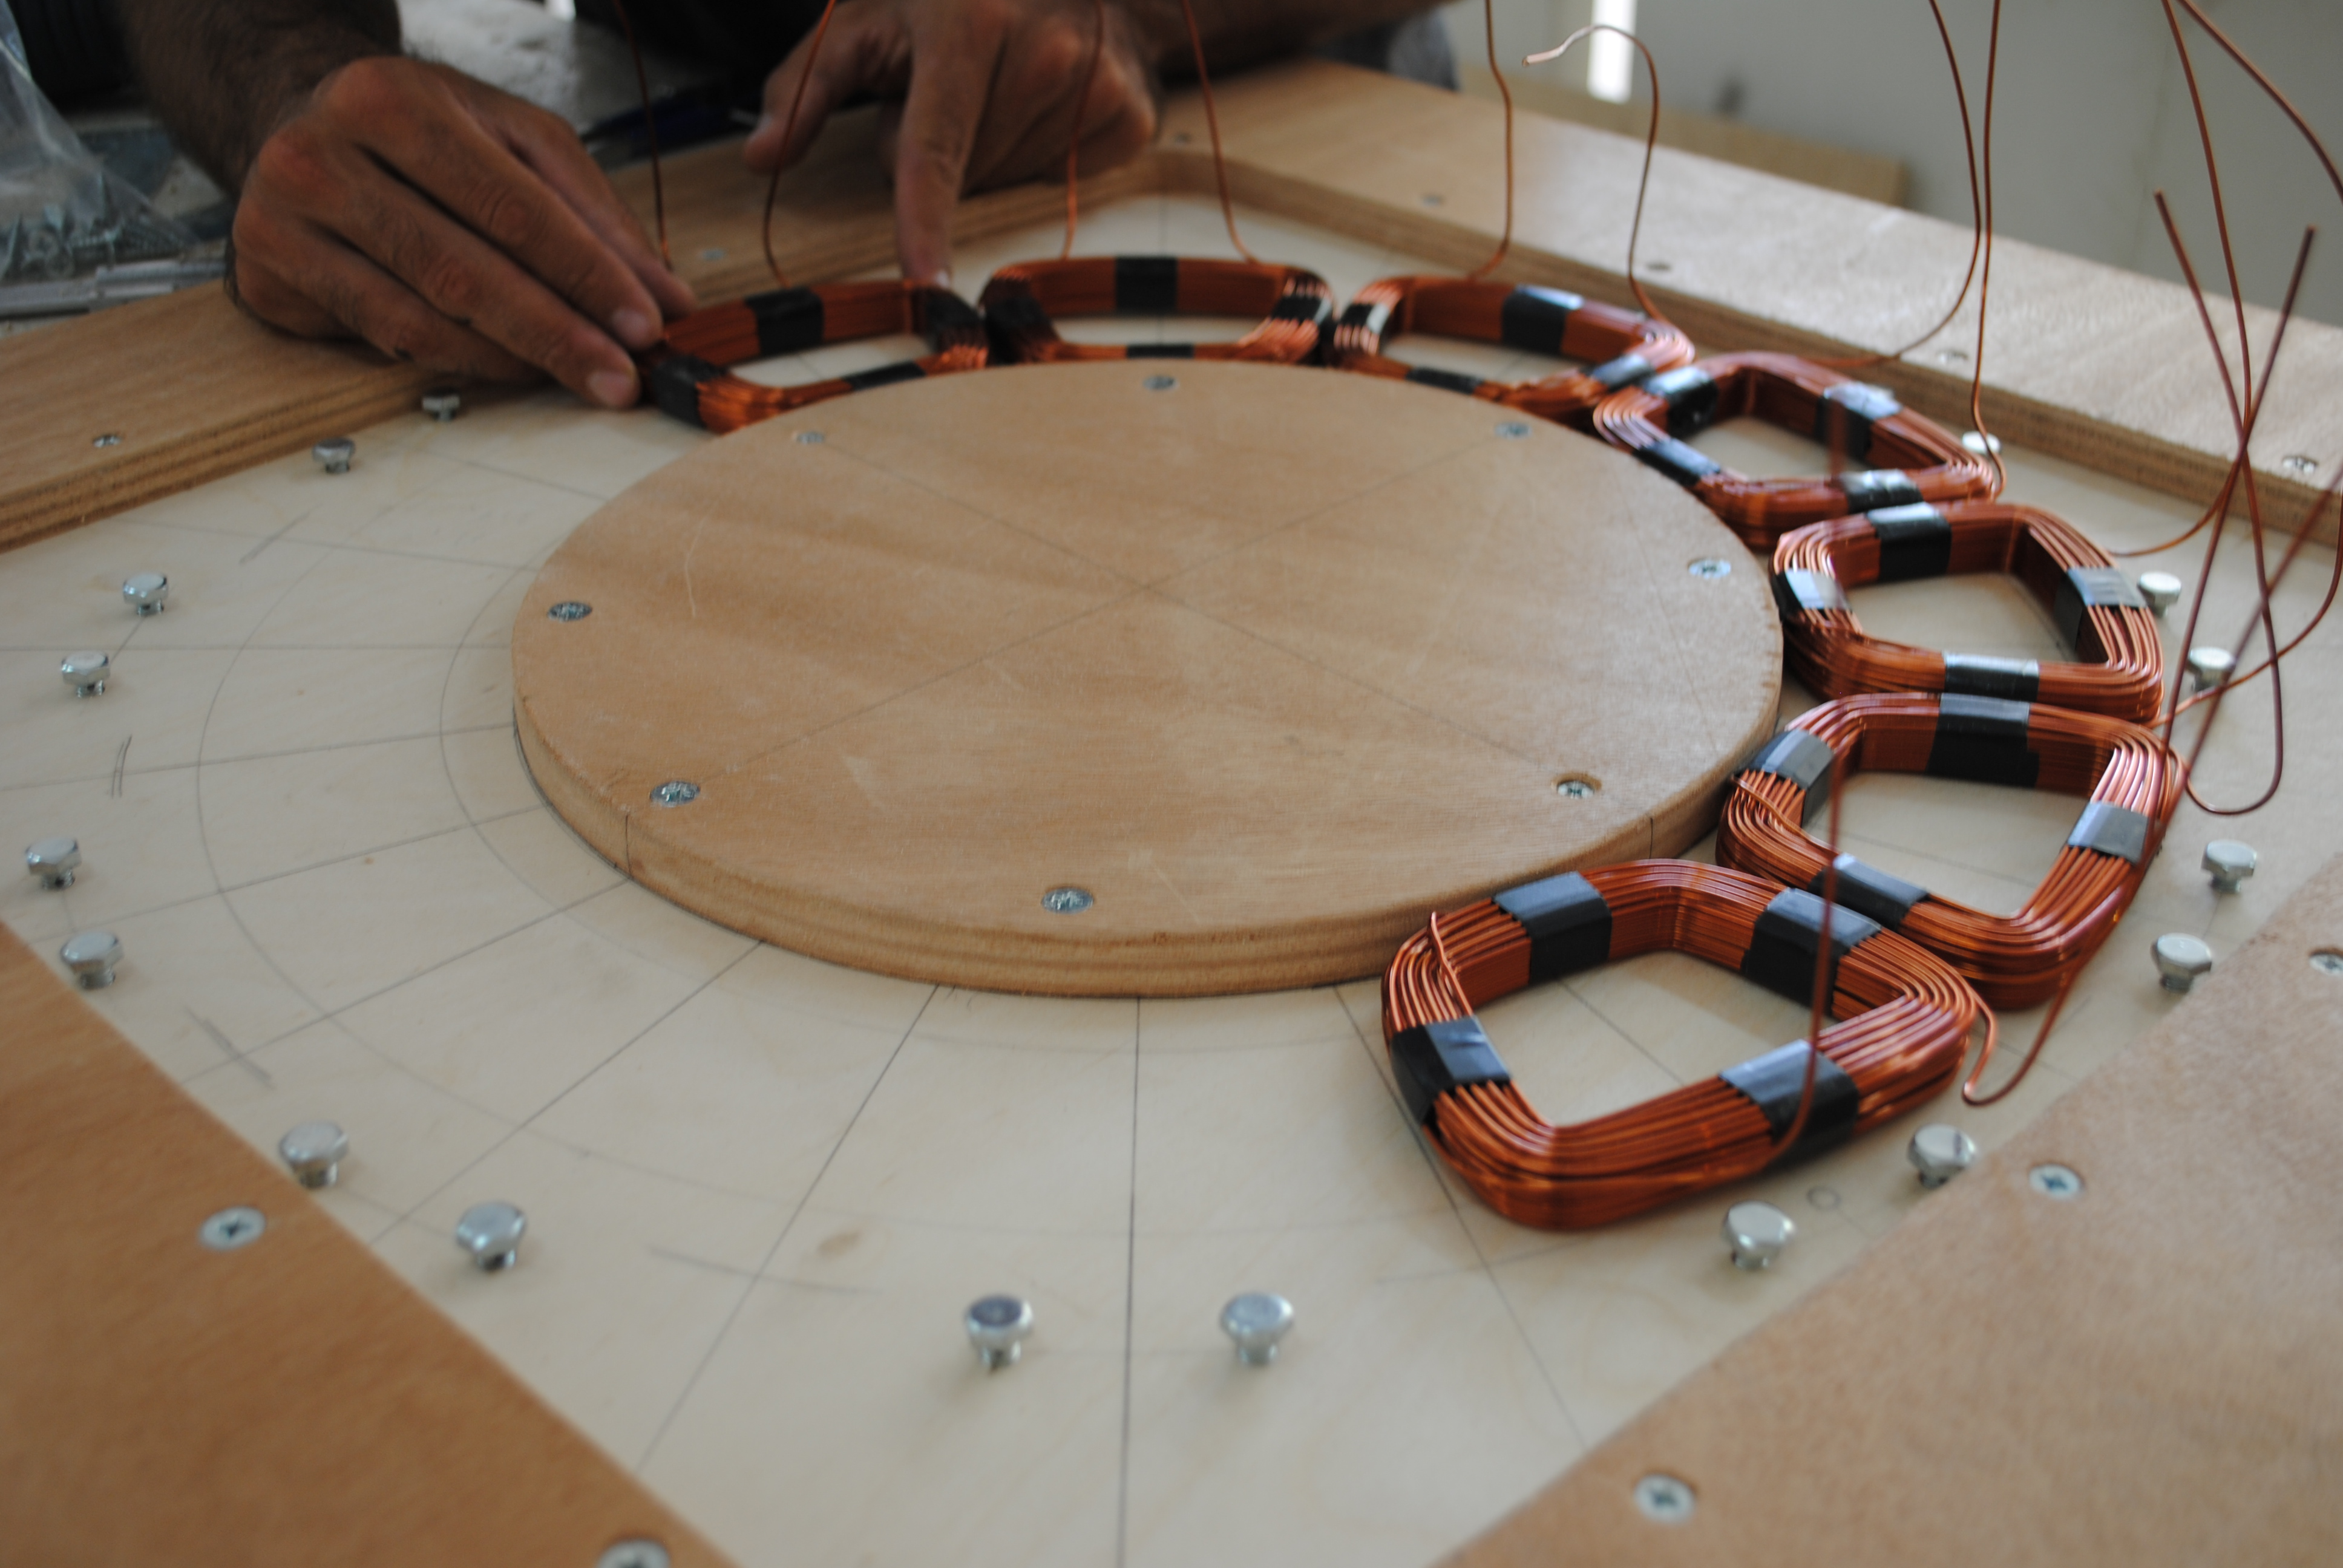 August 2013 Ferrite Magnet Generator For A 2 4m Rotor